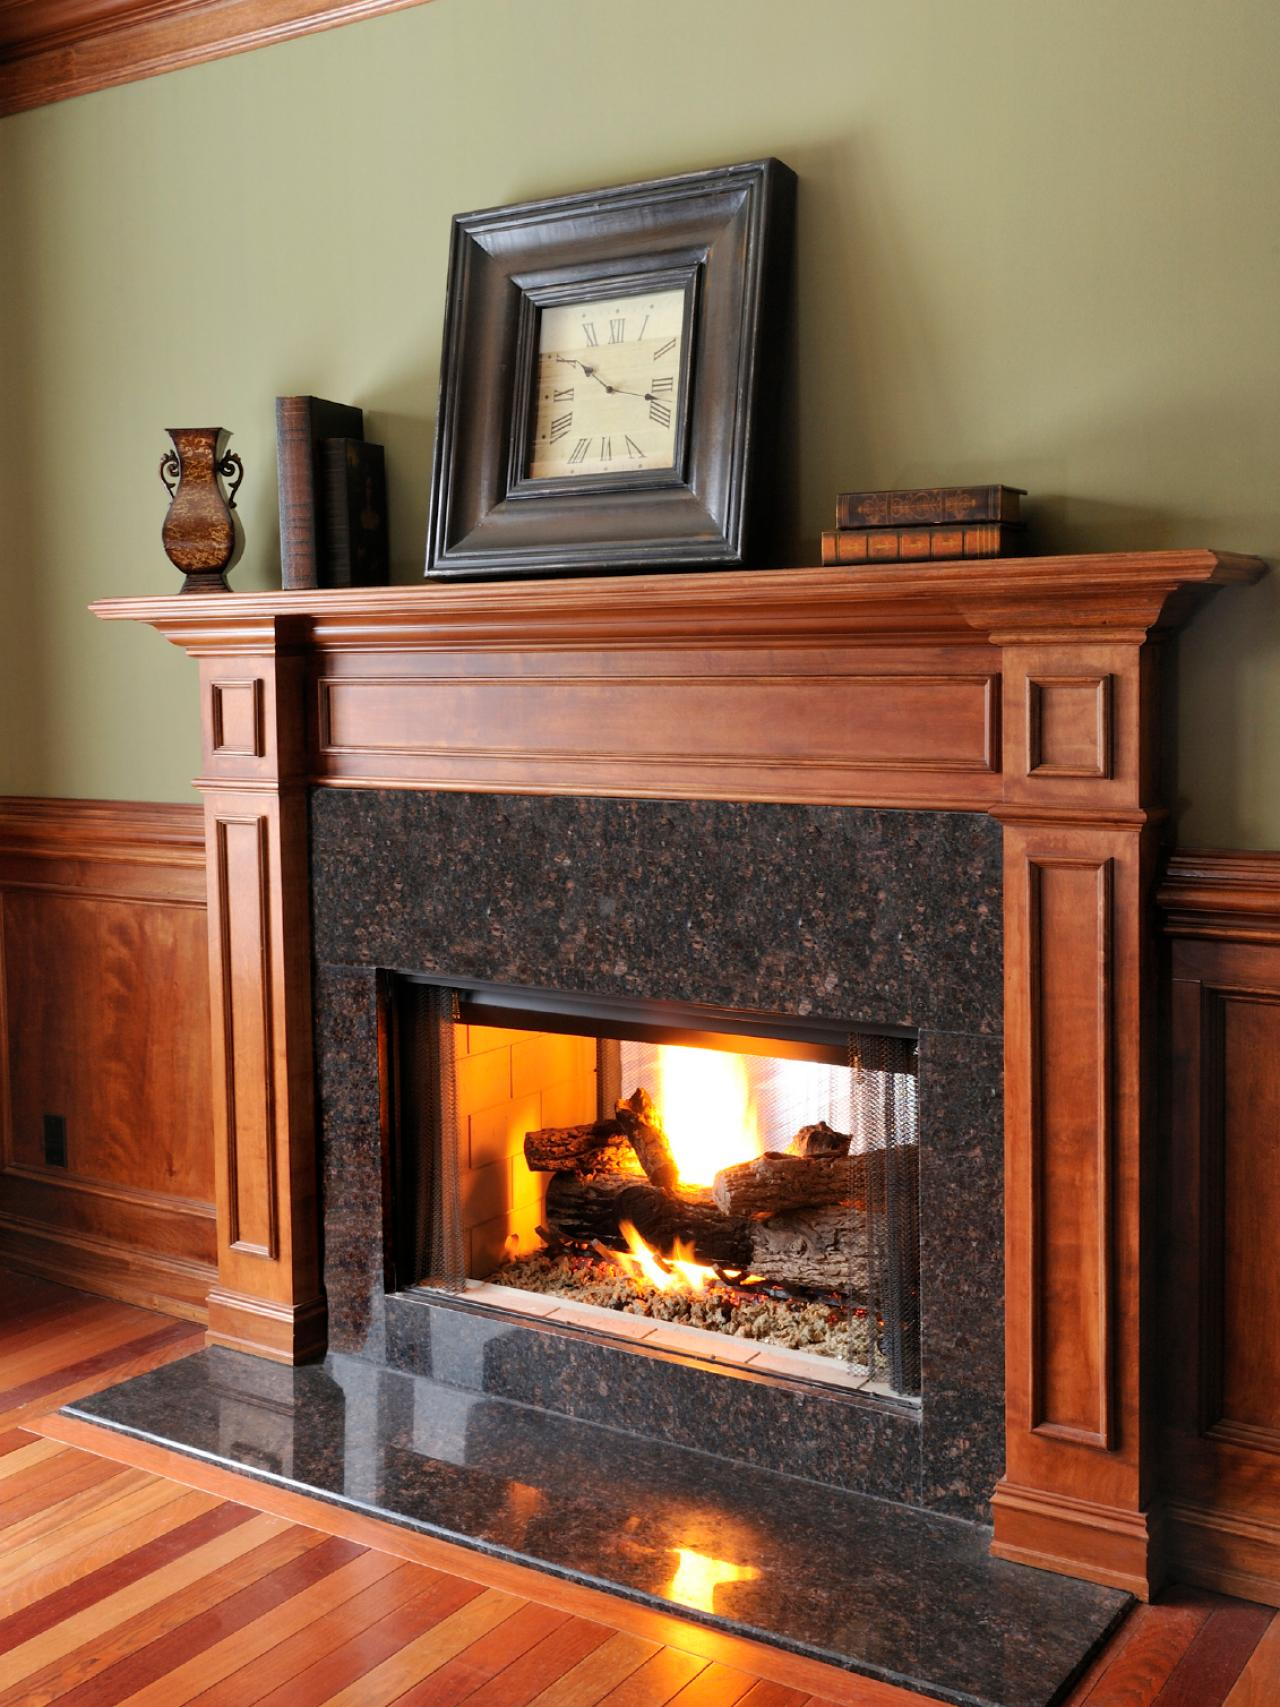 All About Fireplaces and Fireplace Surrounds | DIY